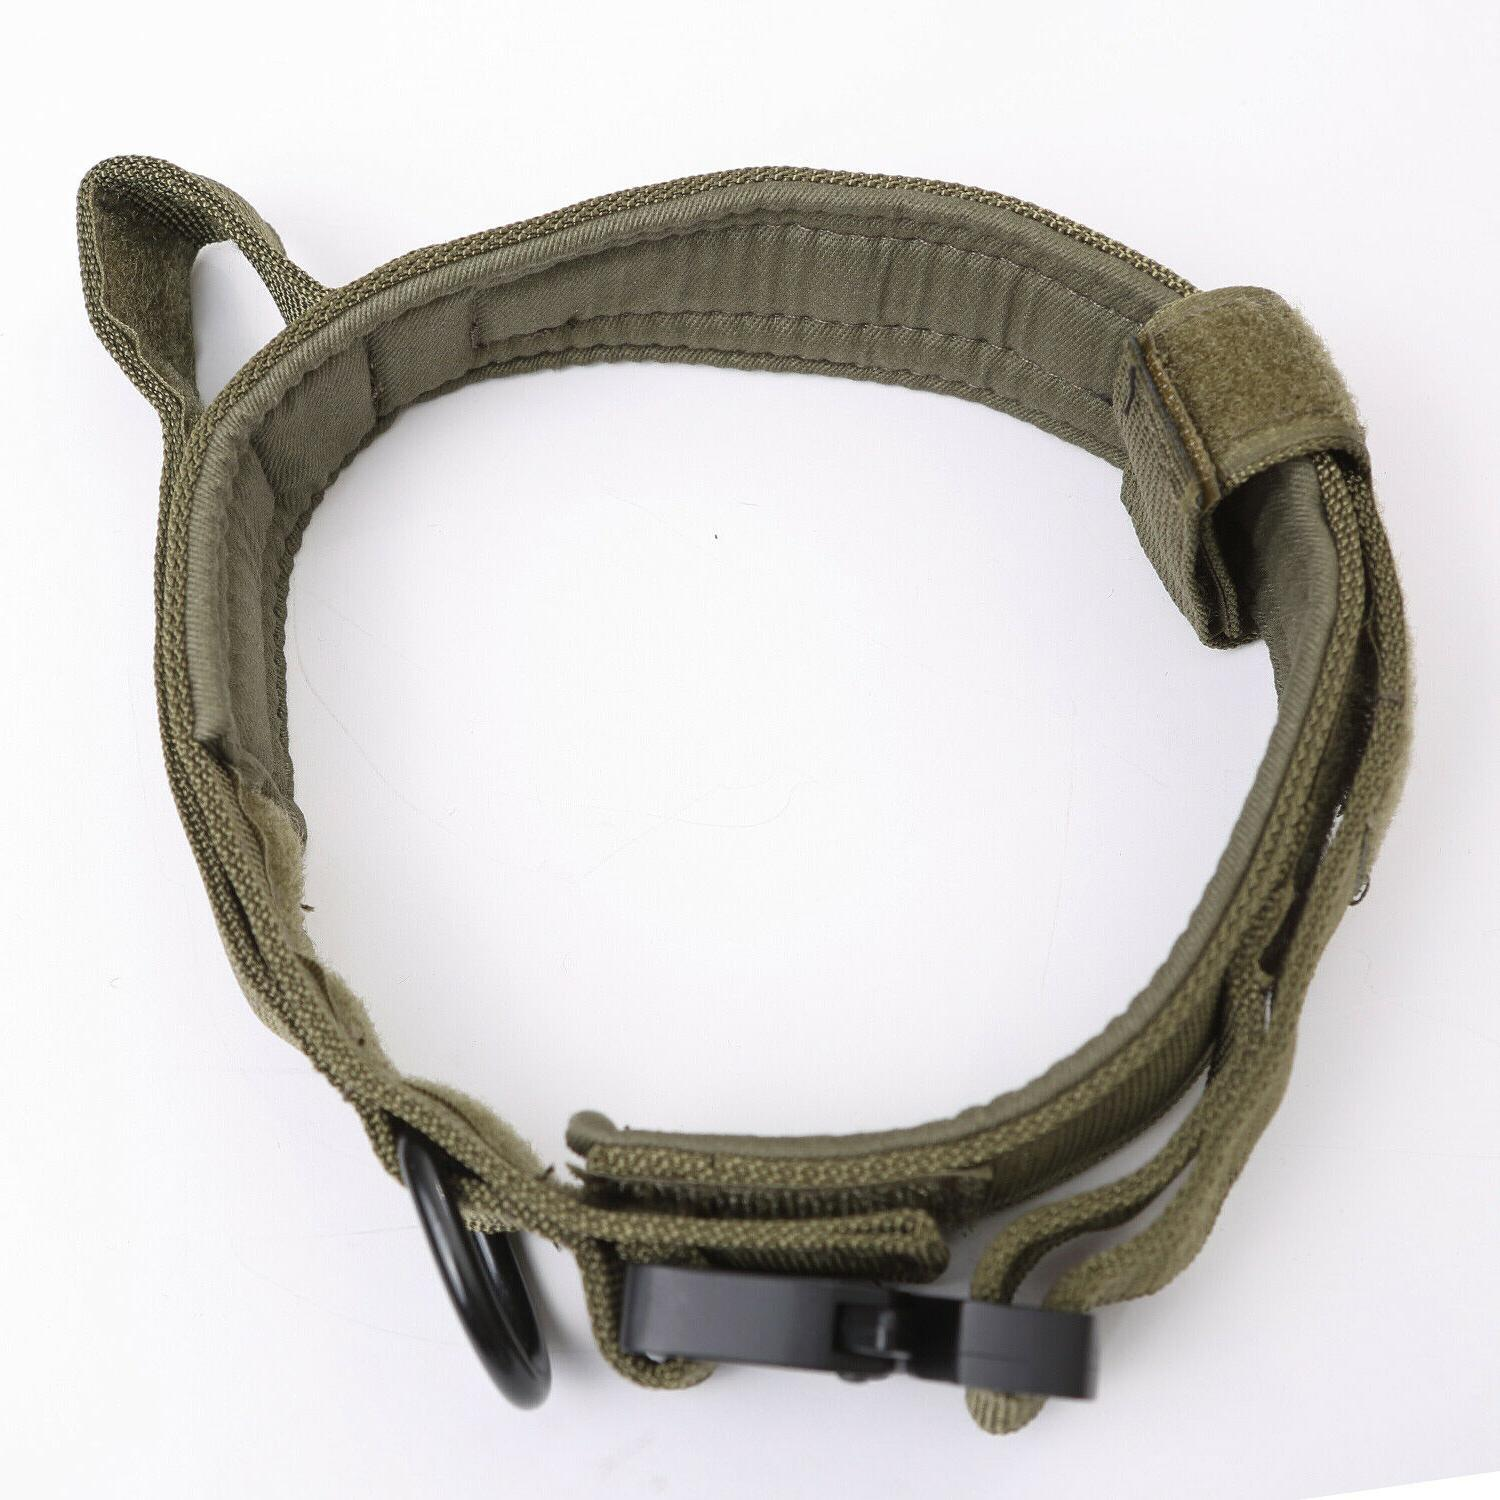 Tactical K9 Collar+Leash for Duty